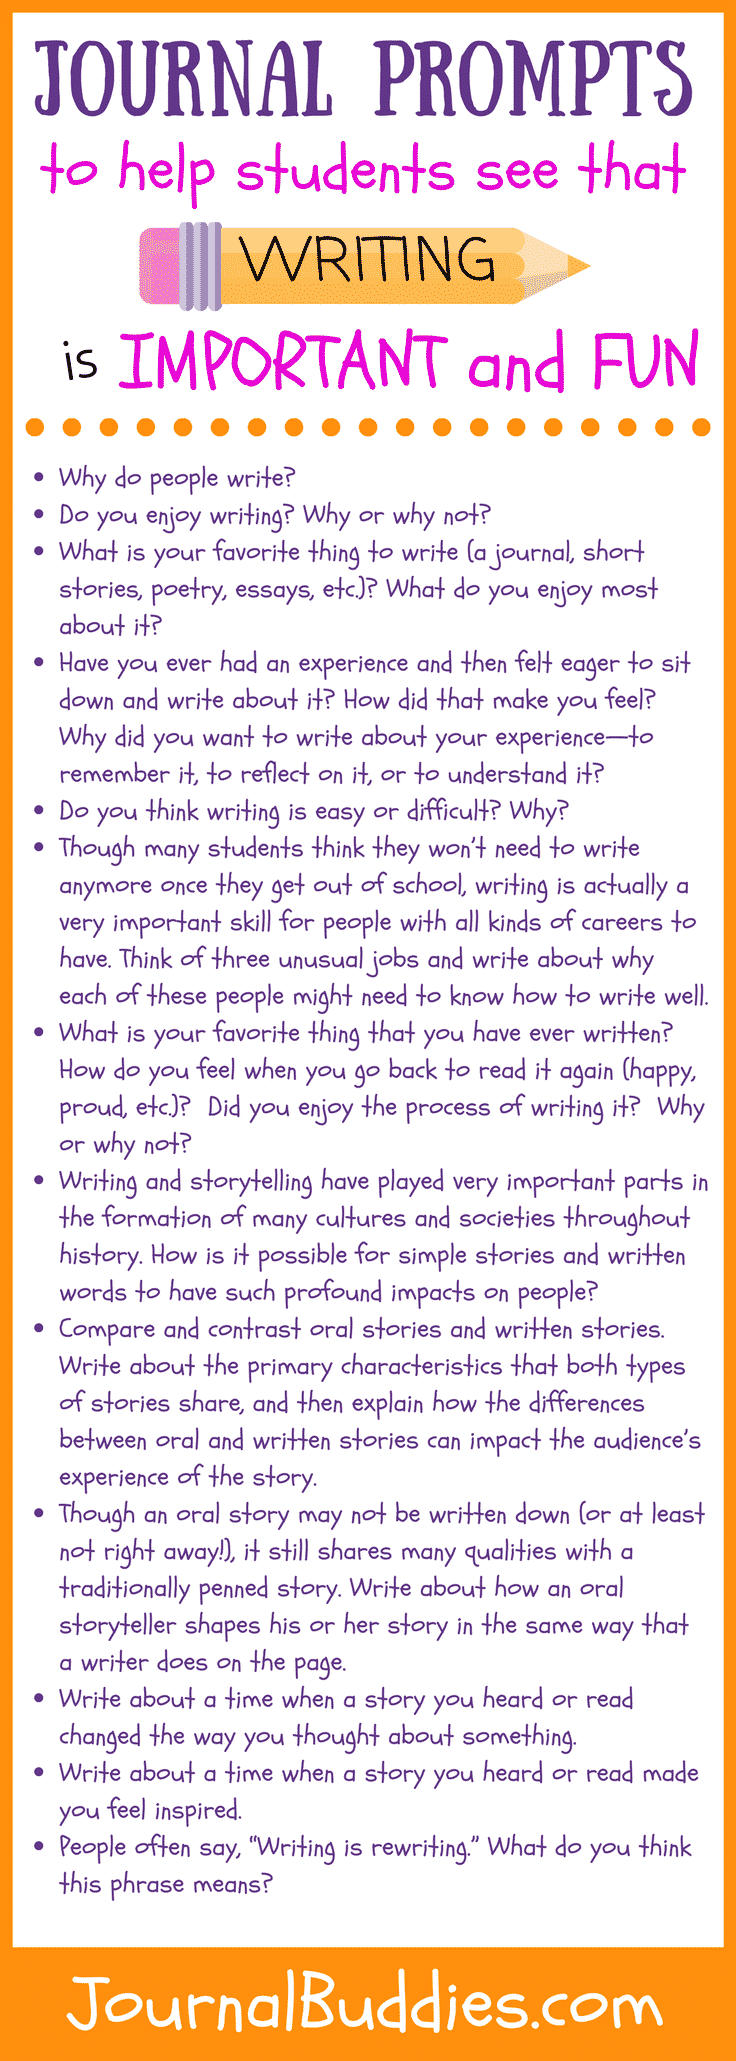 These 31 new journal prompts help kids see that writing matters by exploring themes like the importance of storytelling and how writing is used to disseminate ideas—and they also show how fun writing can be by asking them to reflect on topics like the most inspiring stories they've ever heard and the pride they feel when reading their own writing